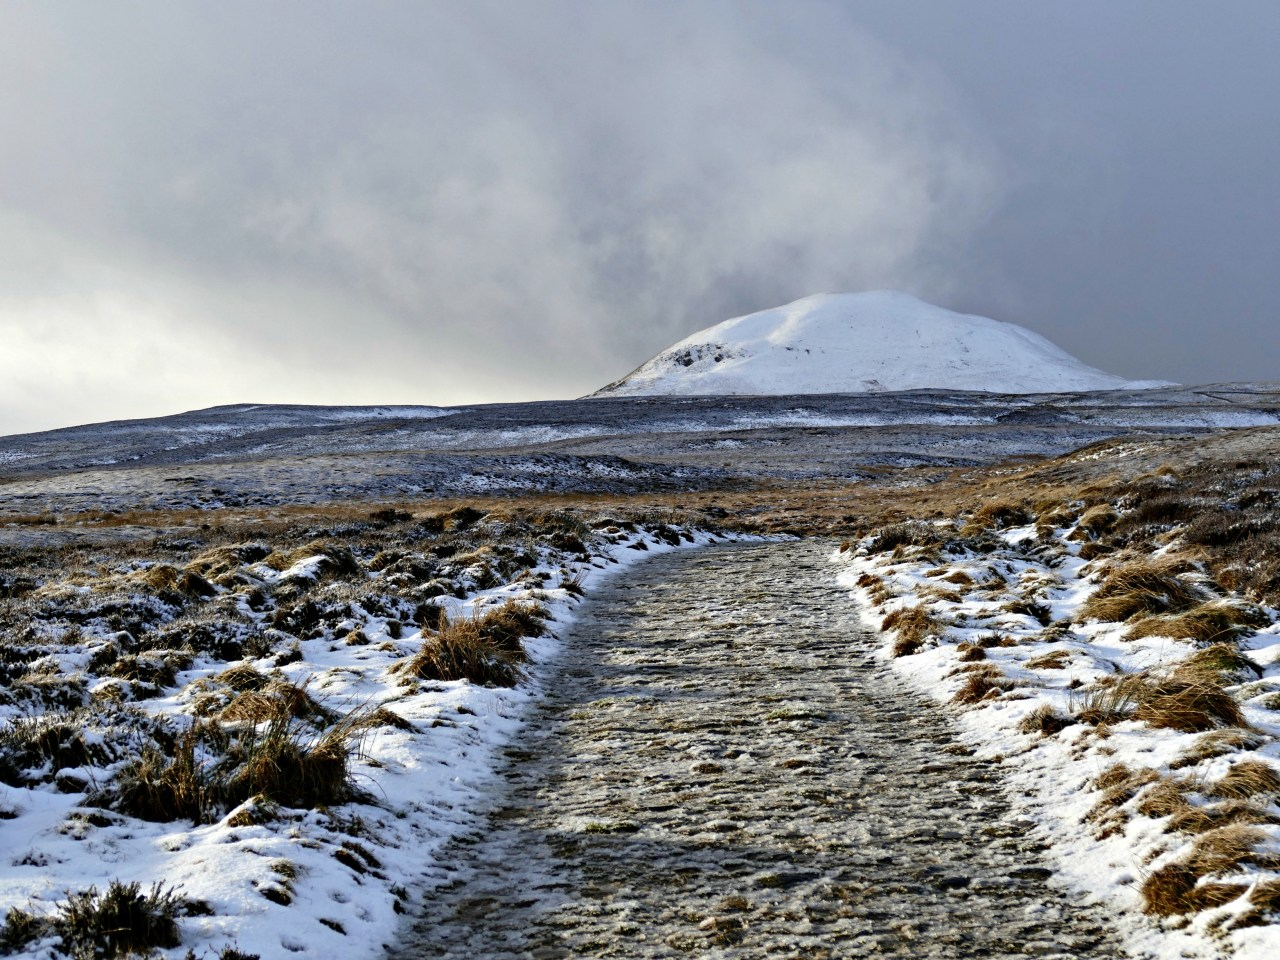 Walking in the wintry Pentland Hills, south Edinburgh. Image by Niki Fulton